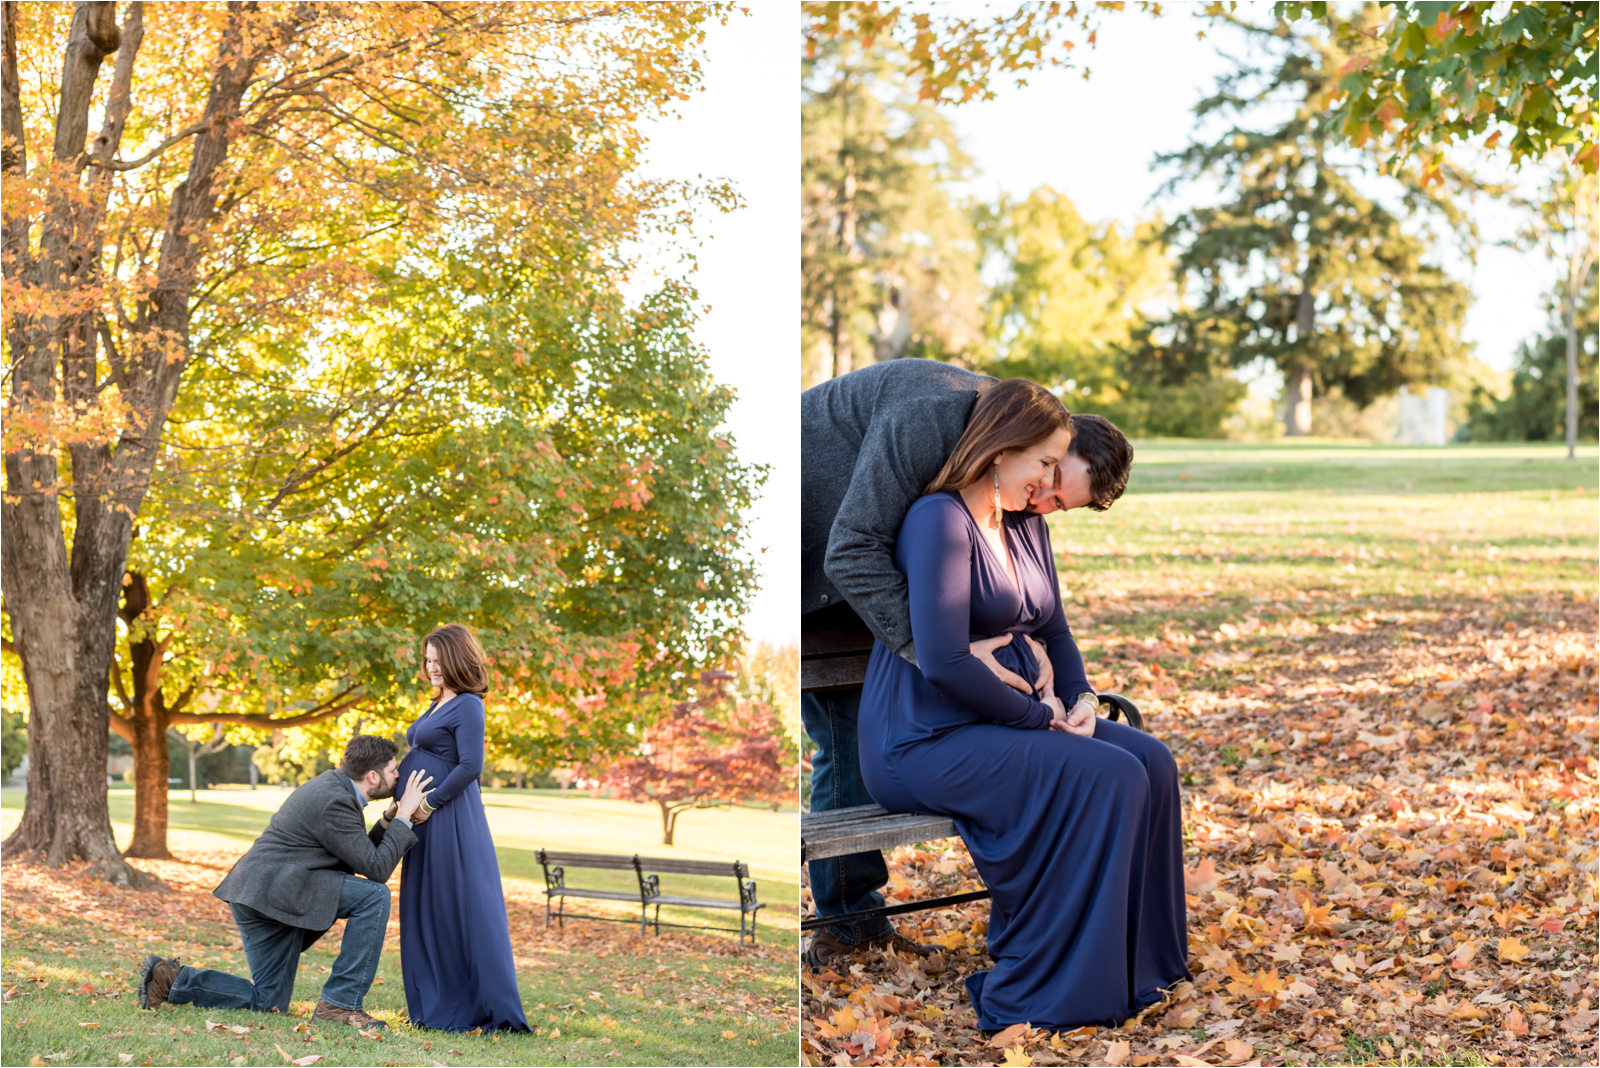 Bates-maternity-photography-session-focus-on-joy-photography-maymont-park-richmond-virginia-rva-husband-wife-pregnancy-man-jeans-grey-blazer-woman-blue-purple-flowing-maxi-dress-va